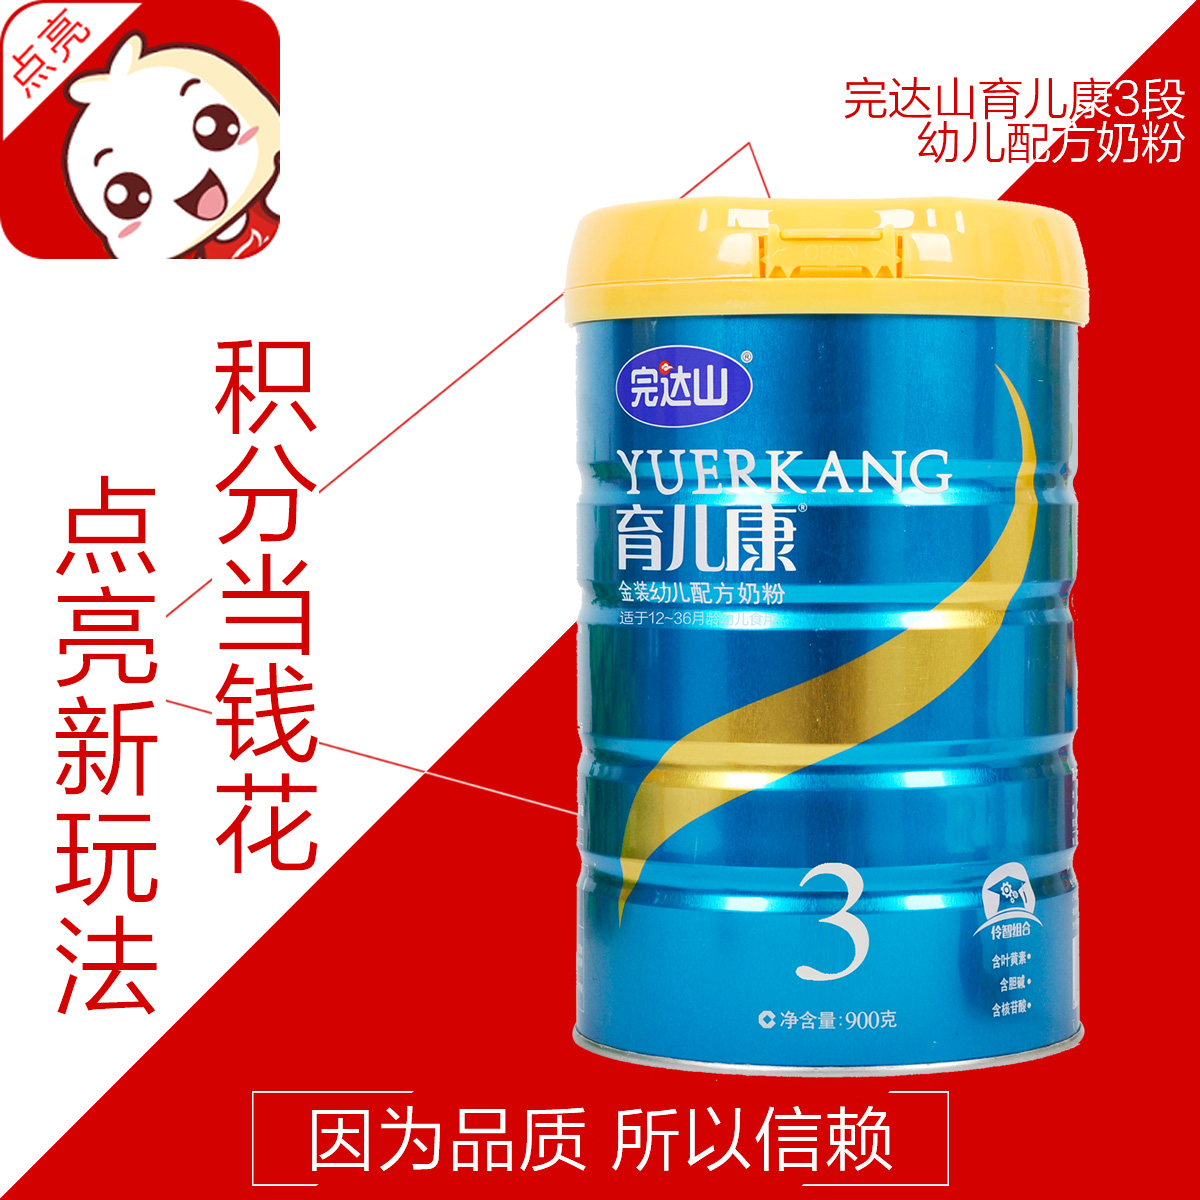 Wanda gold parenting kang three segments infant formula milk powder 1g canned canned 2-36